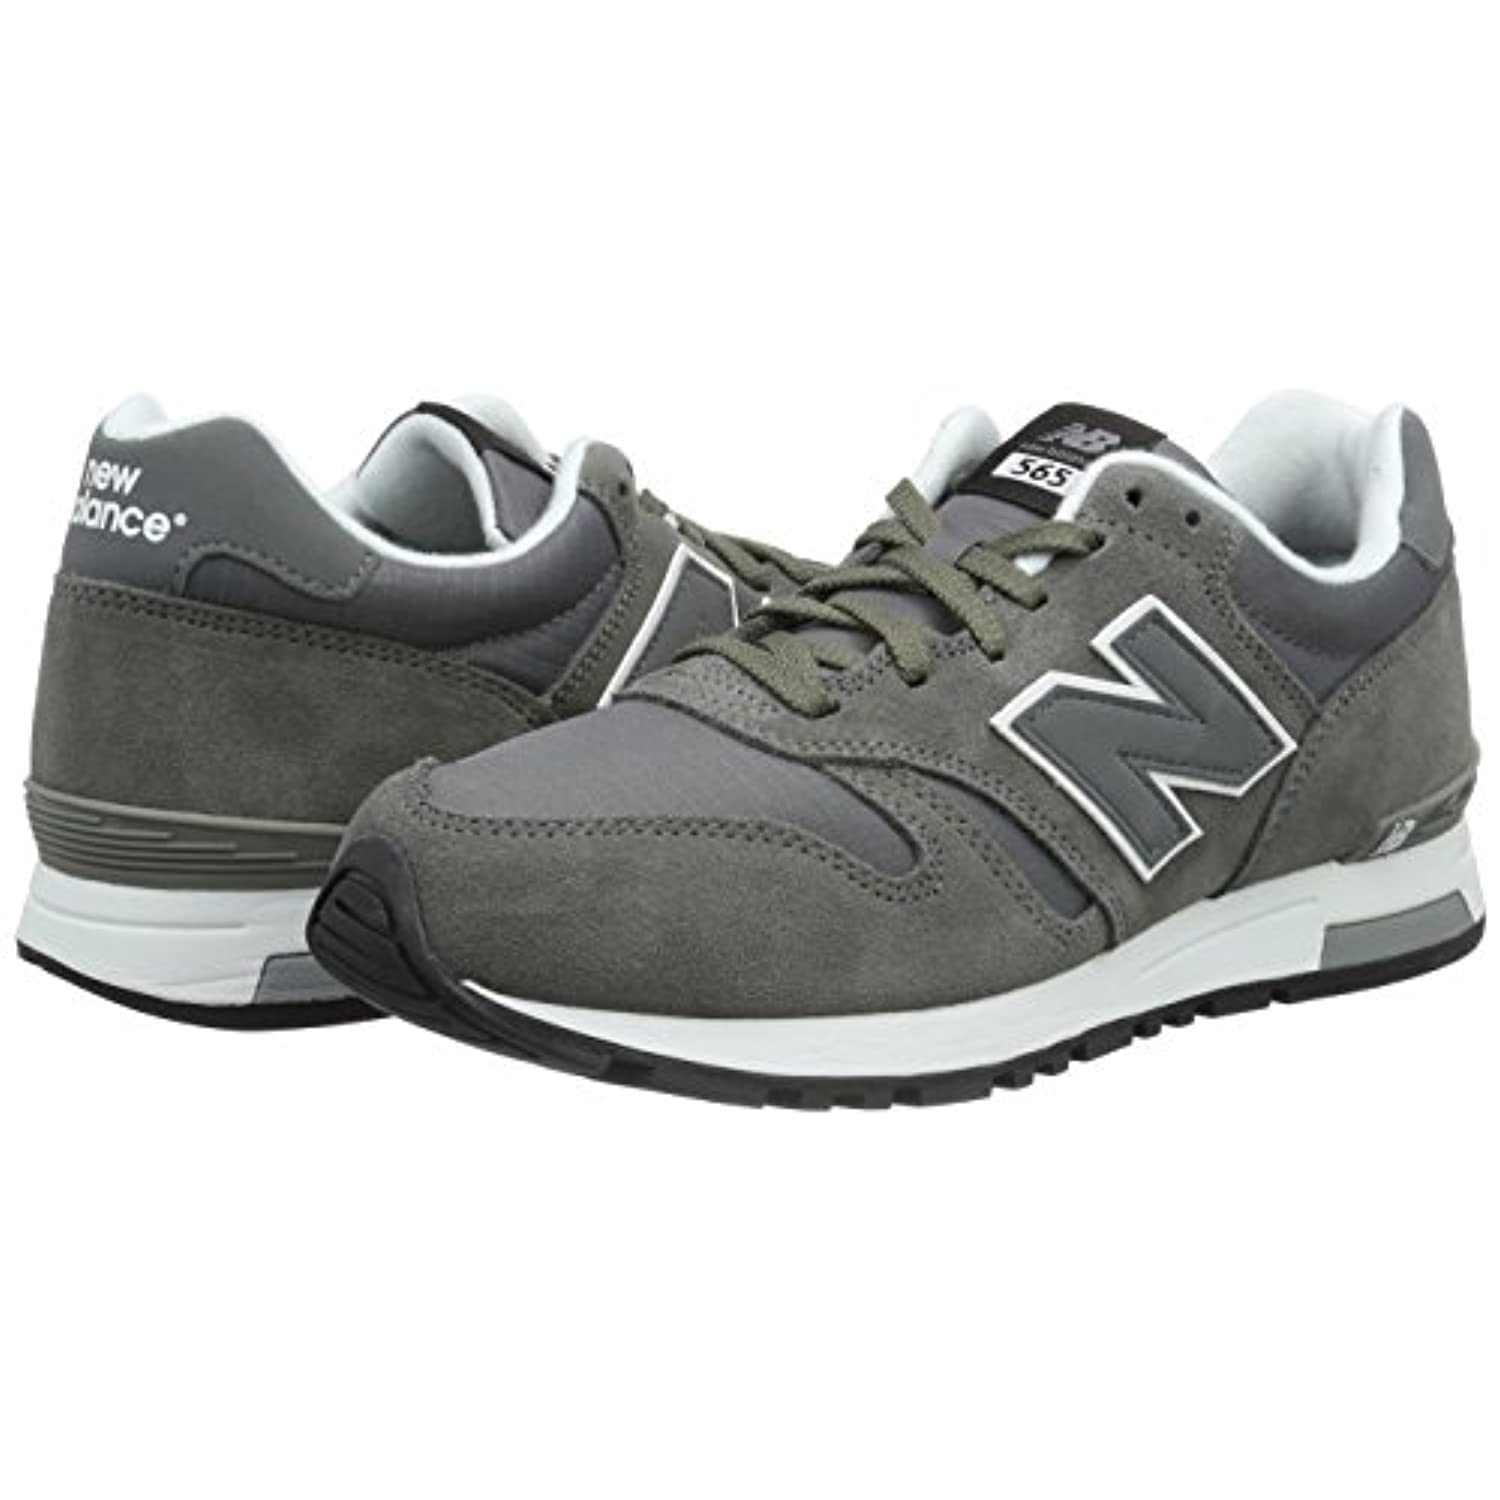 New Balance Men's Ml565 Classic Running Shoe, Grey | eBay